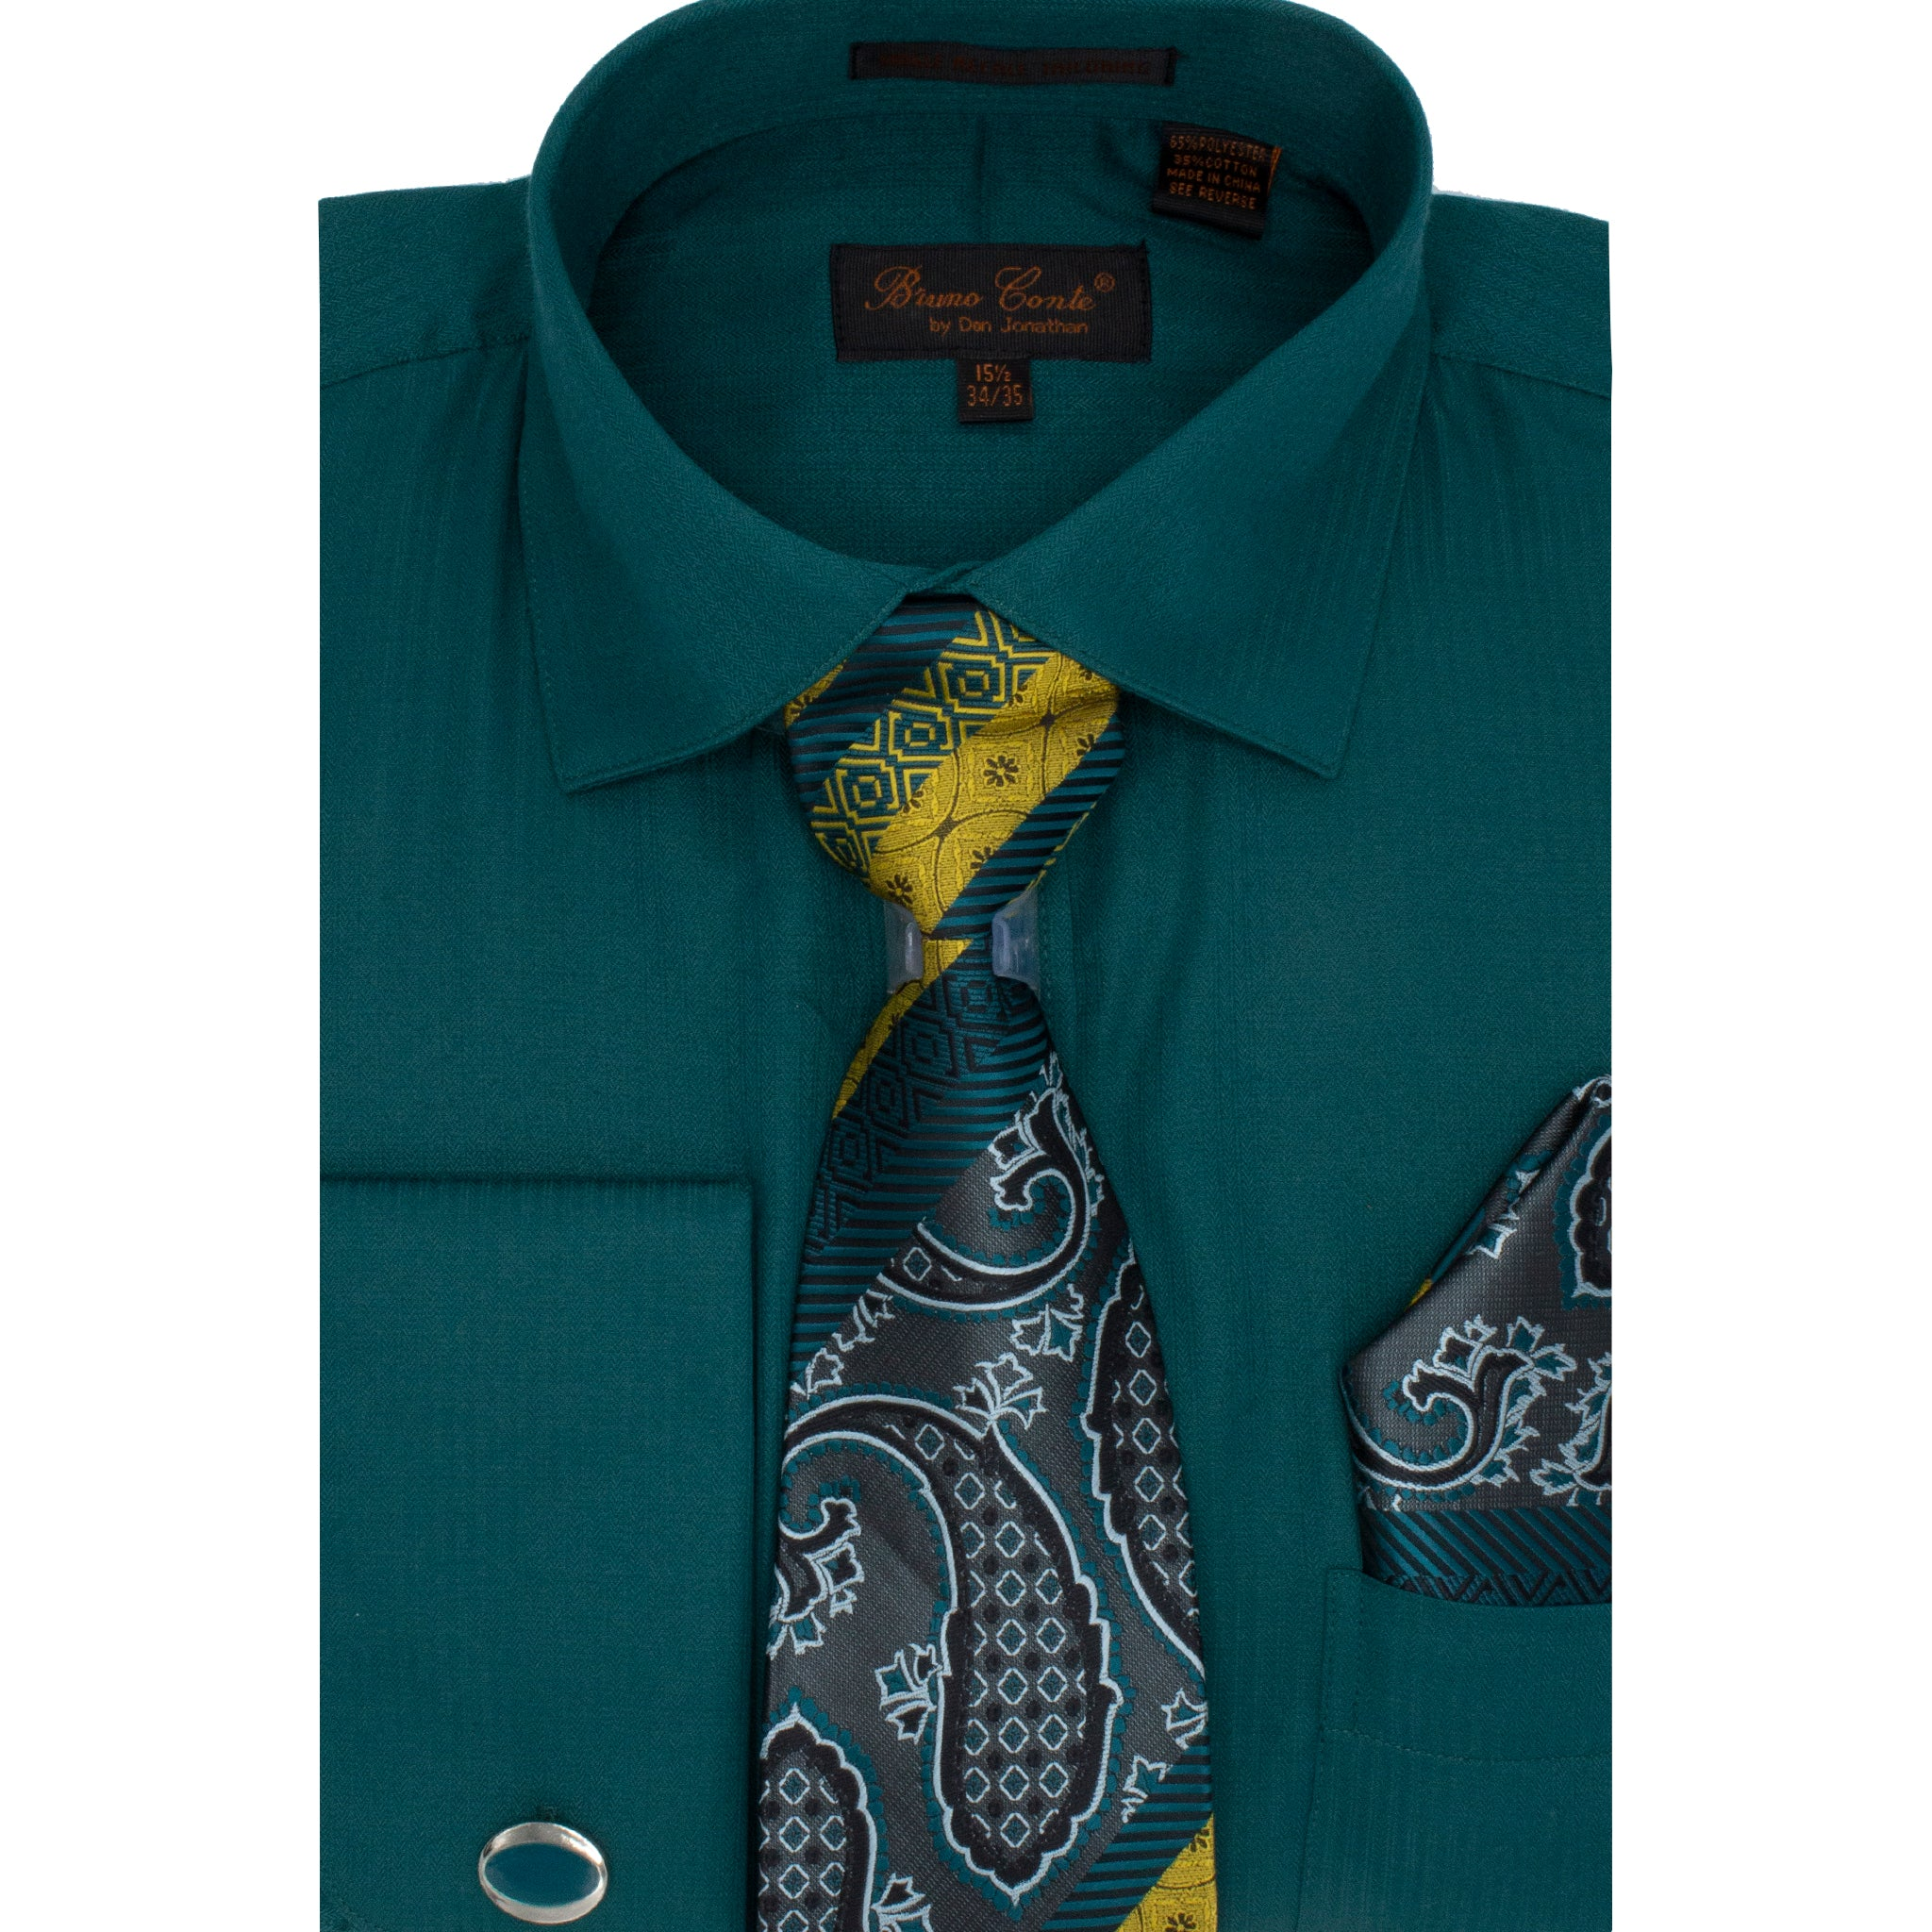 BRUNO CONTE SHIRT,TIE & POCKET SQUARE SET/ GREEN